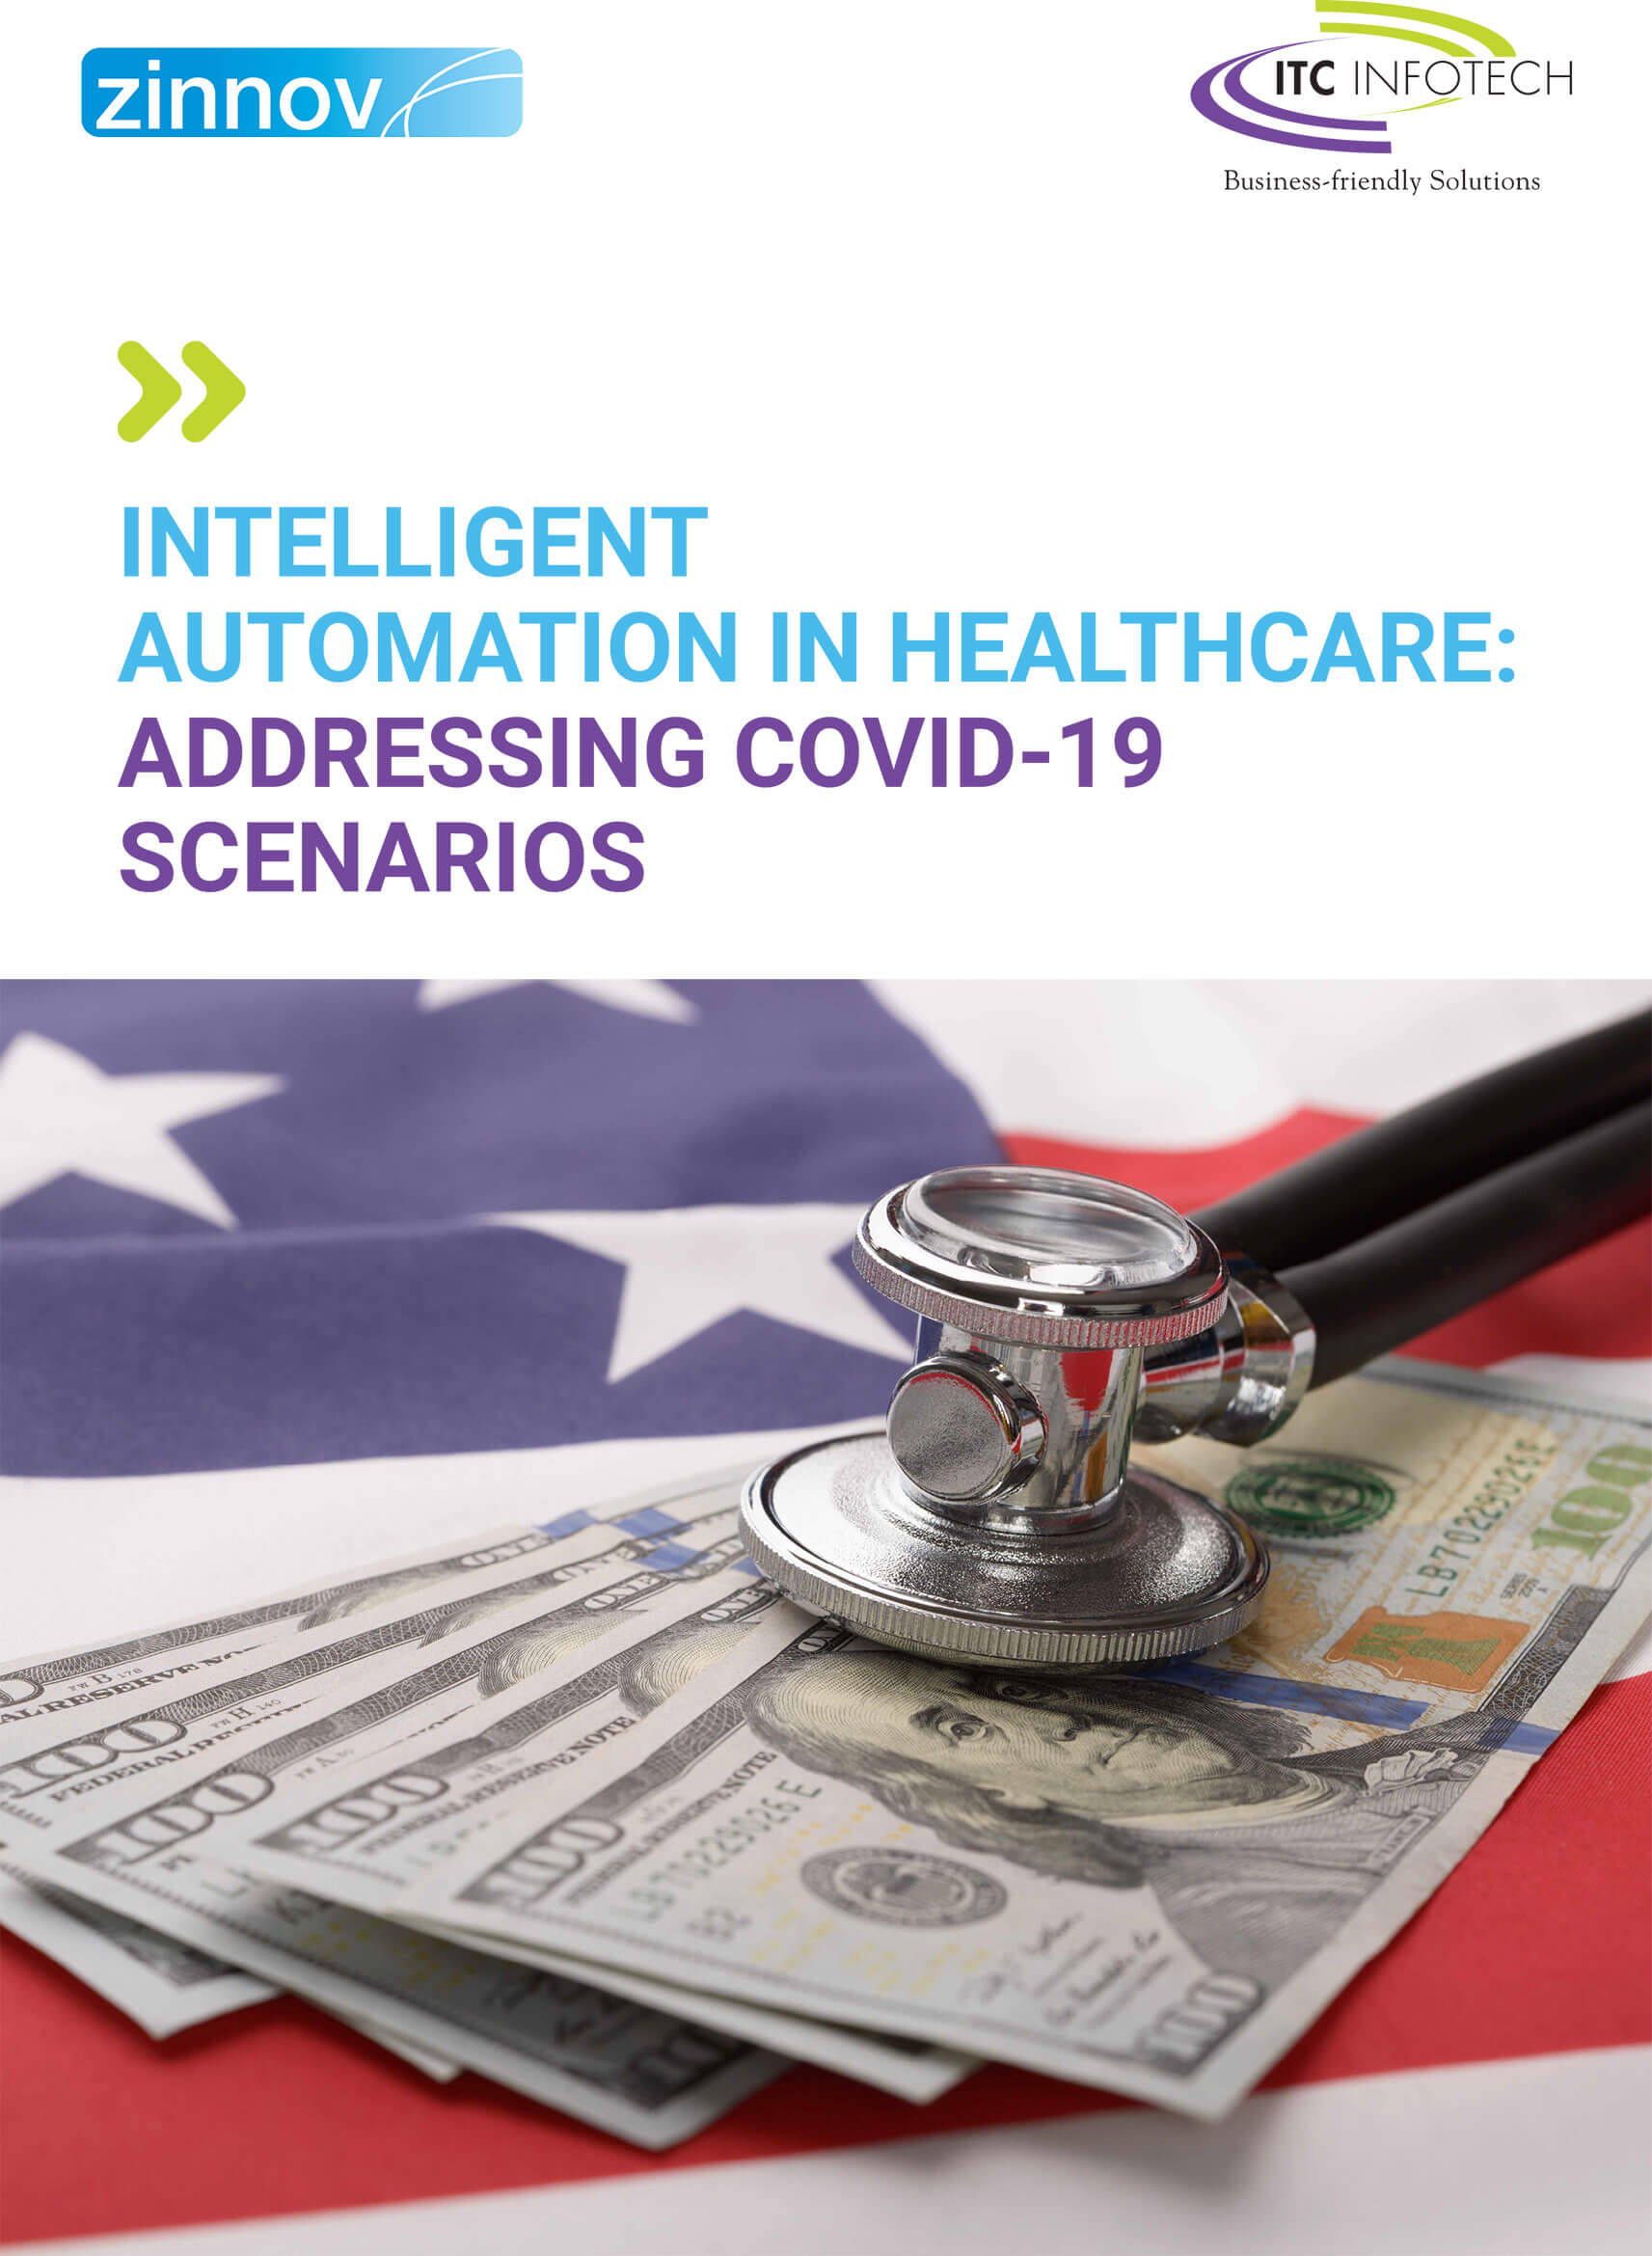 Intelligent Automation In Healthcare - From The Payers' Perspective